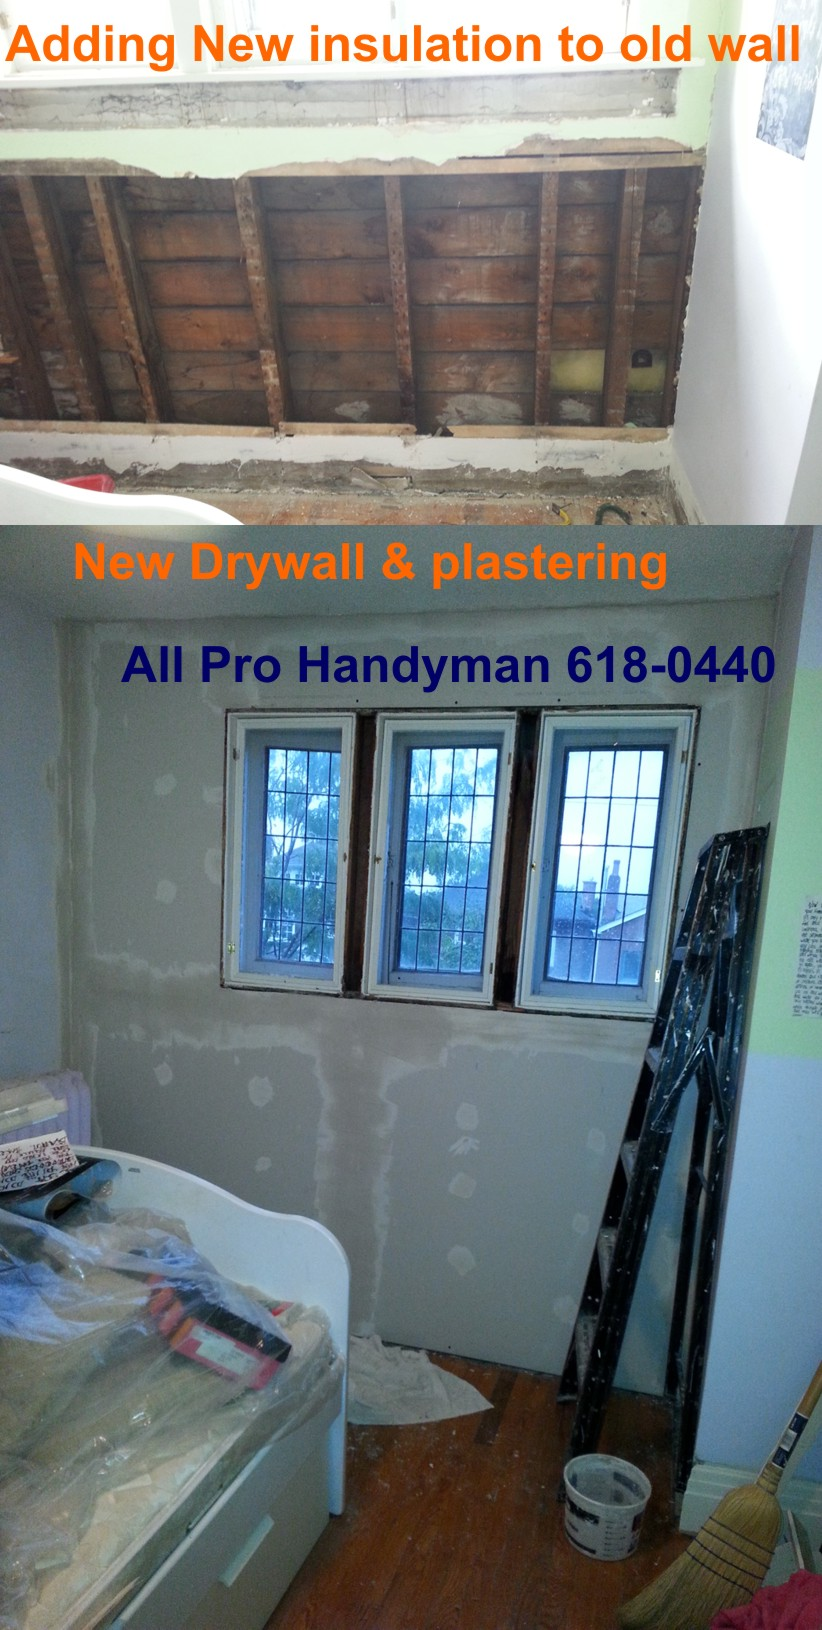 Insulation and Drywall & Plastering